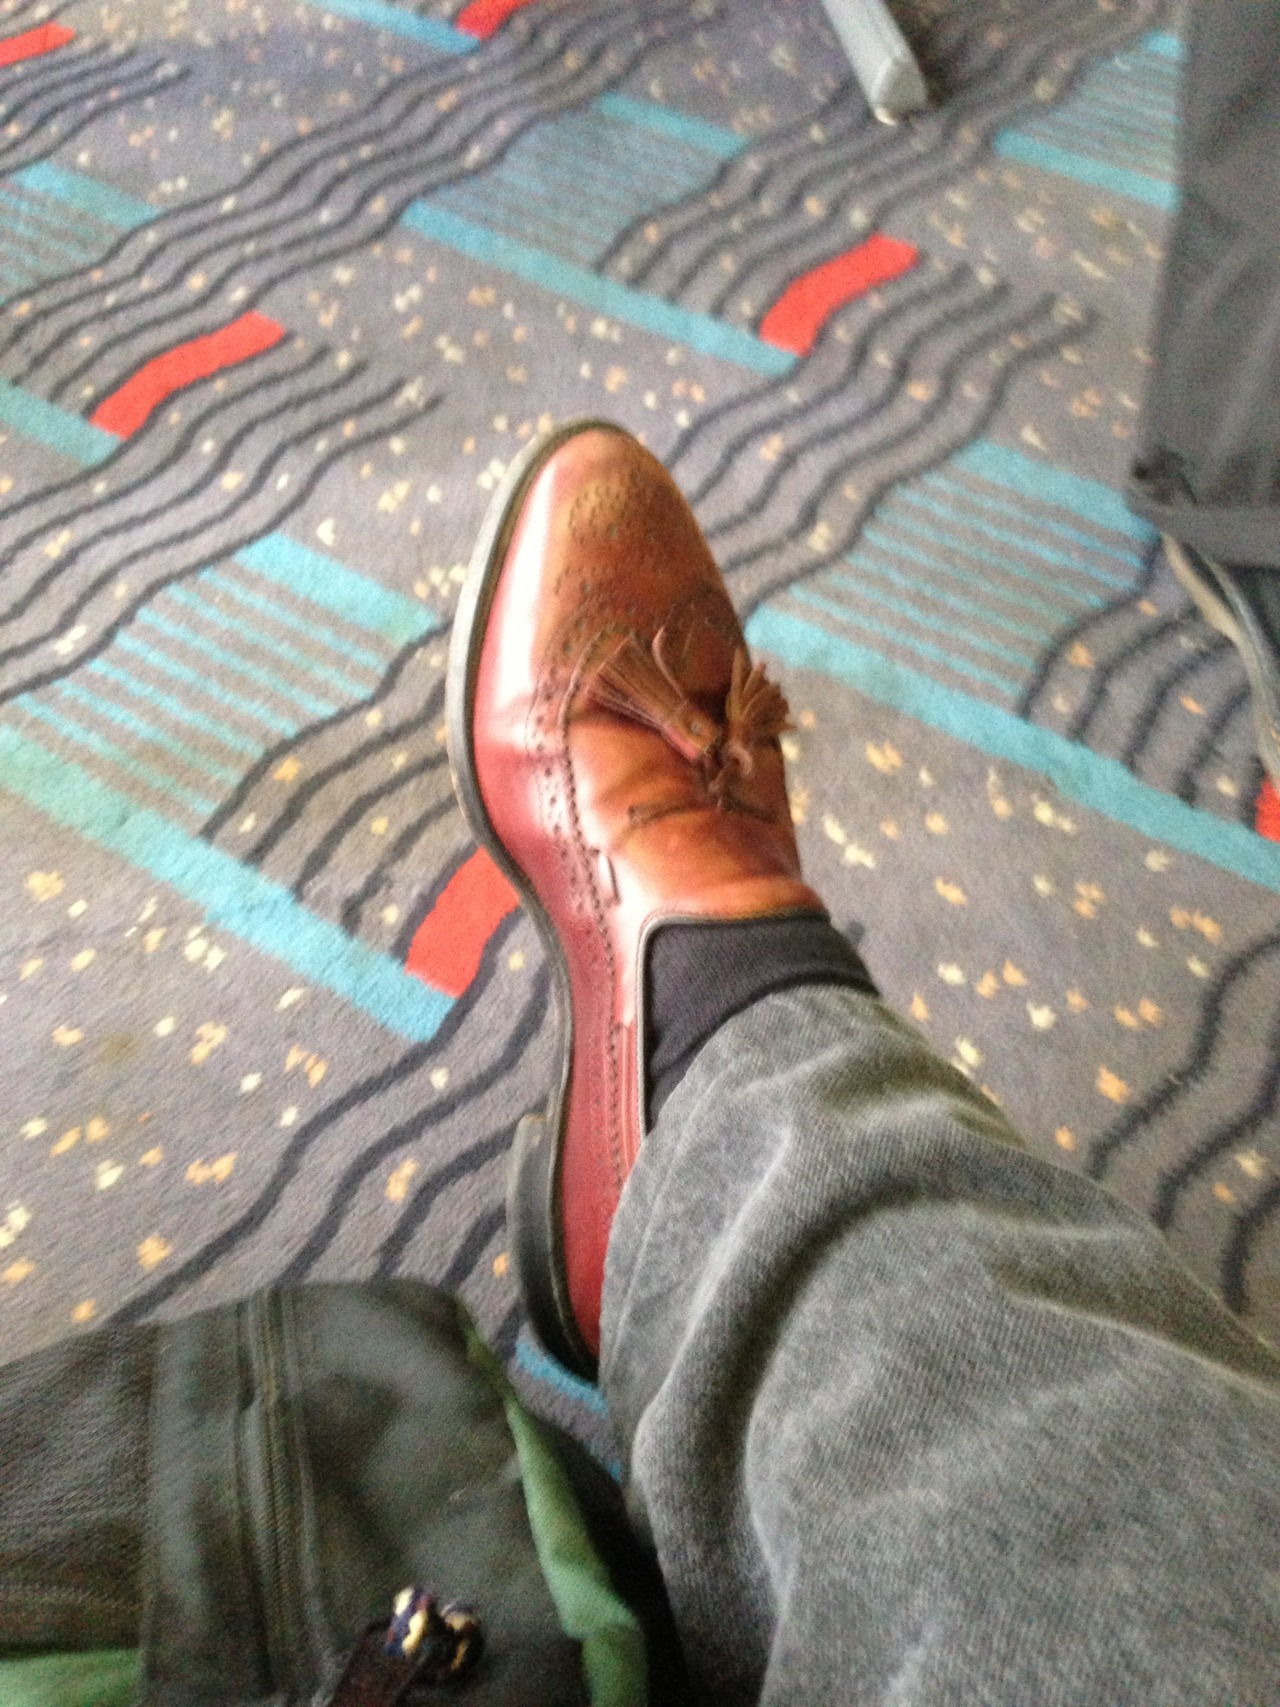 Wore these slipons during airport security. Waltzed on my way while others stuck relaxing shoes. Me = travel l33tist.